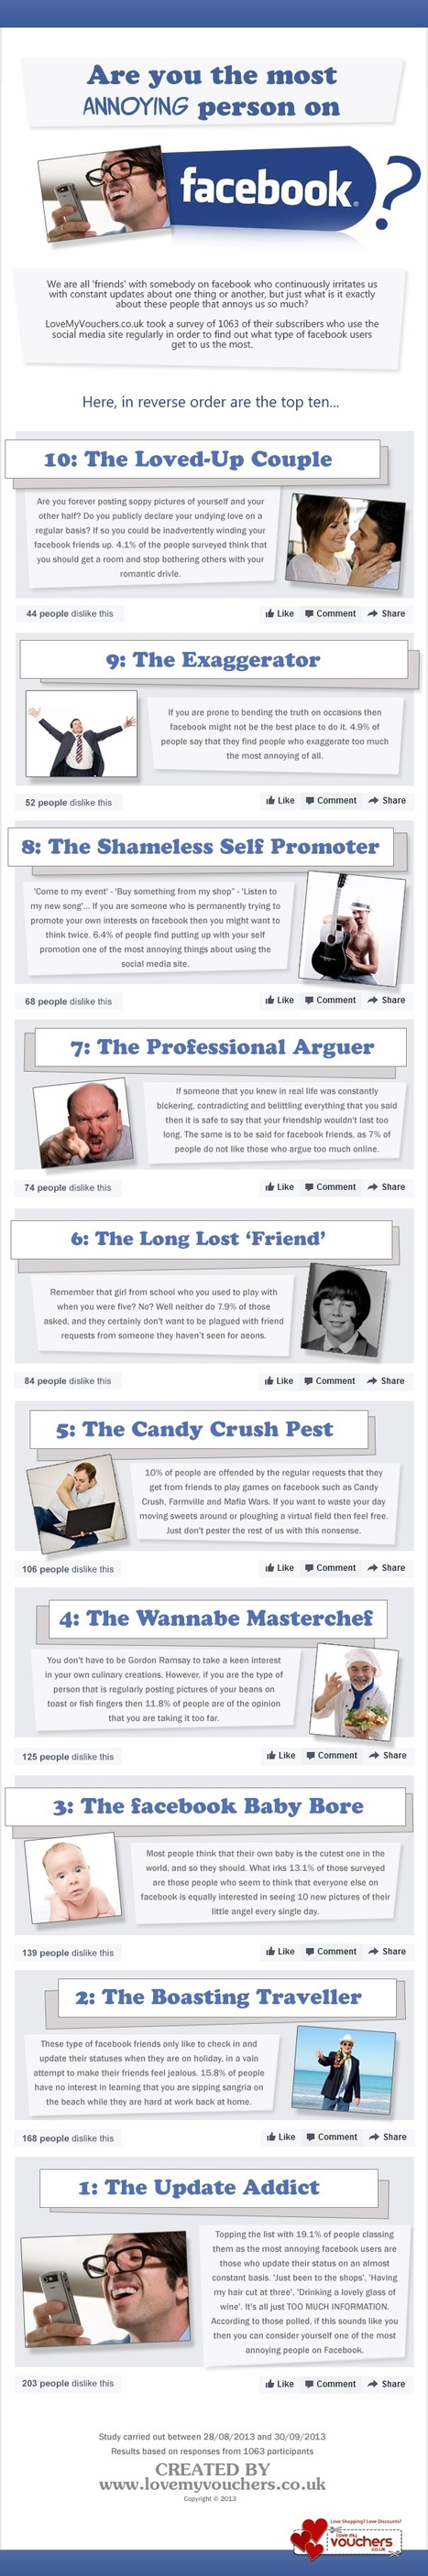 The 10 Most Annoying Types of People on Facebook #infographic | MarketingHits | Scoop.it